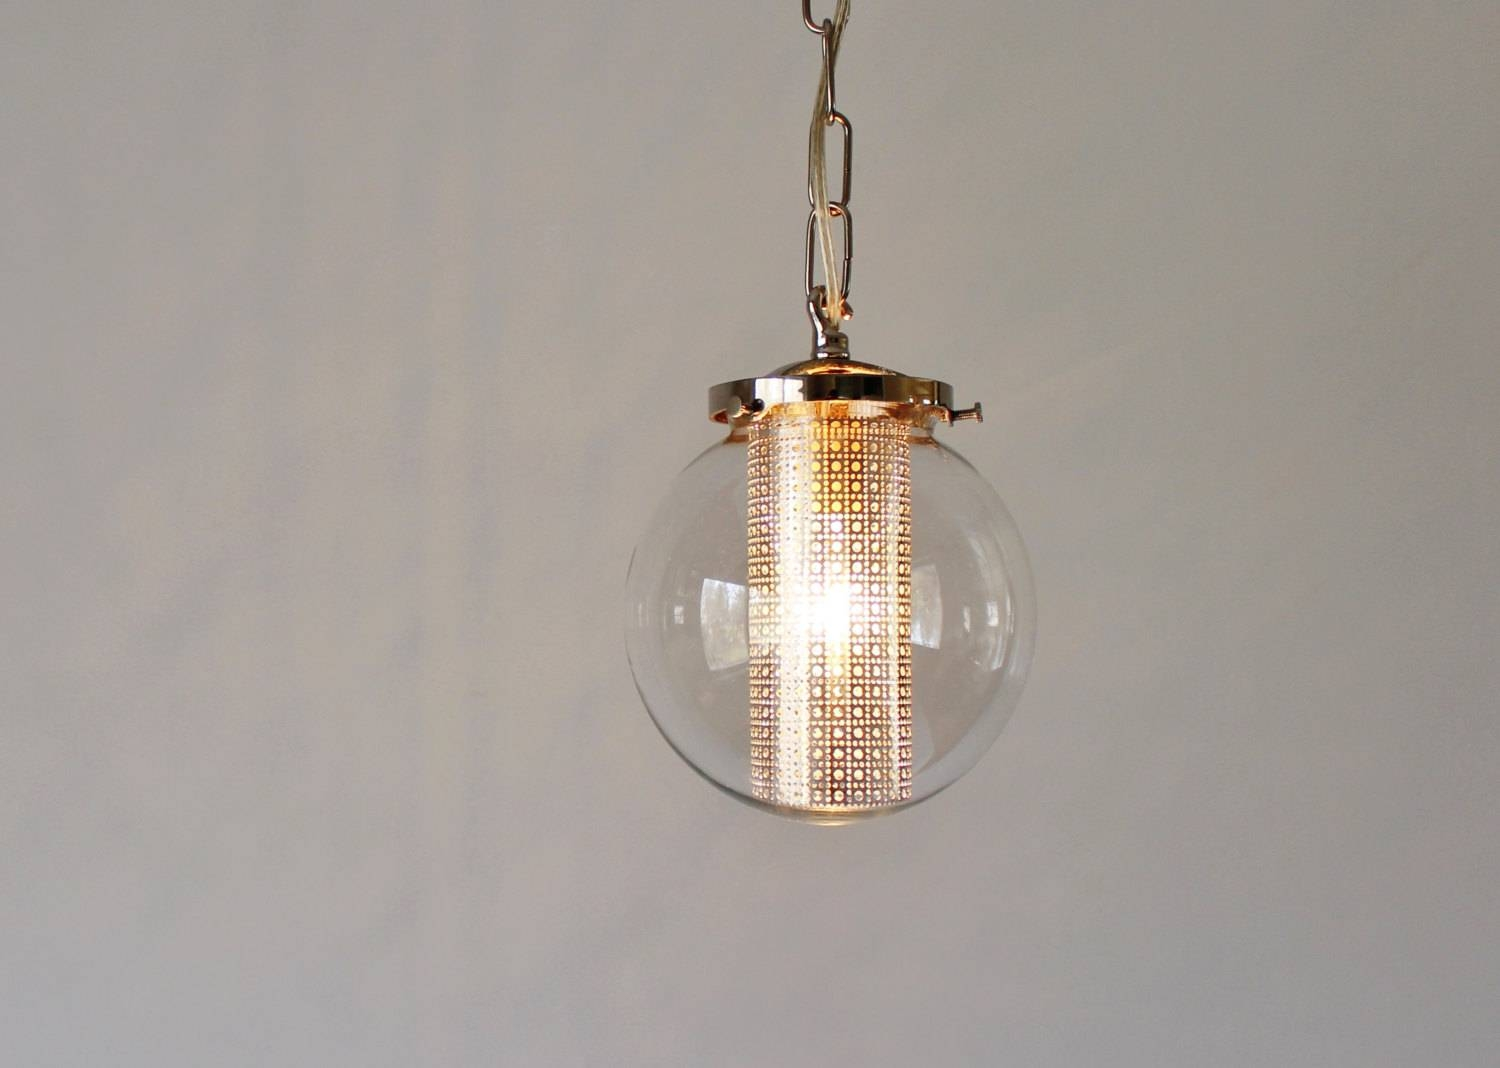 Globe Pendant Light Modern Hanging Pendant Lamp Clear Glass with regard to Etsy Pendant Lights (Image 5 of 15)